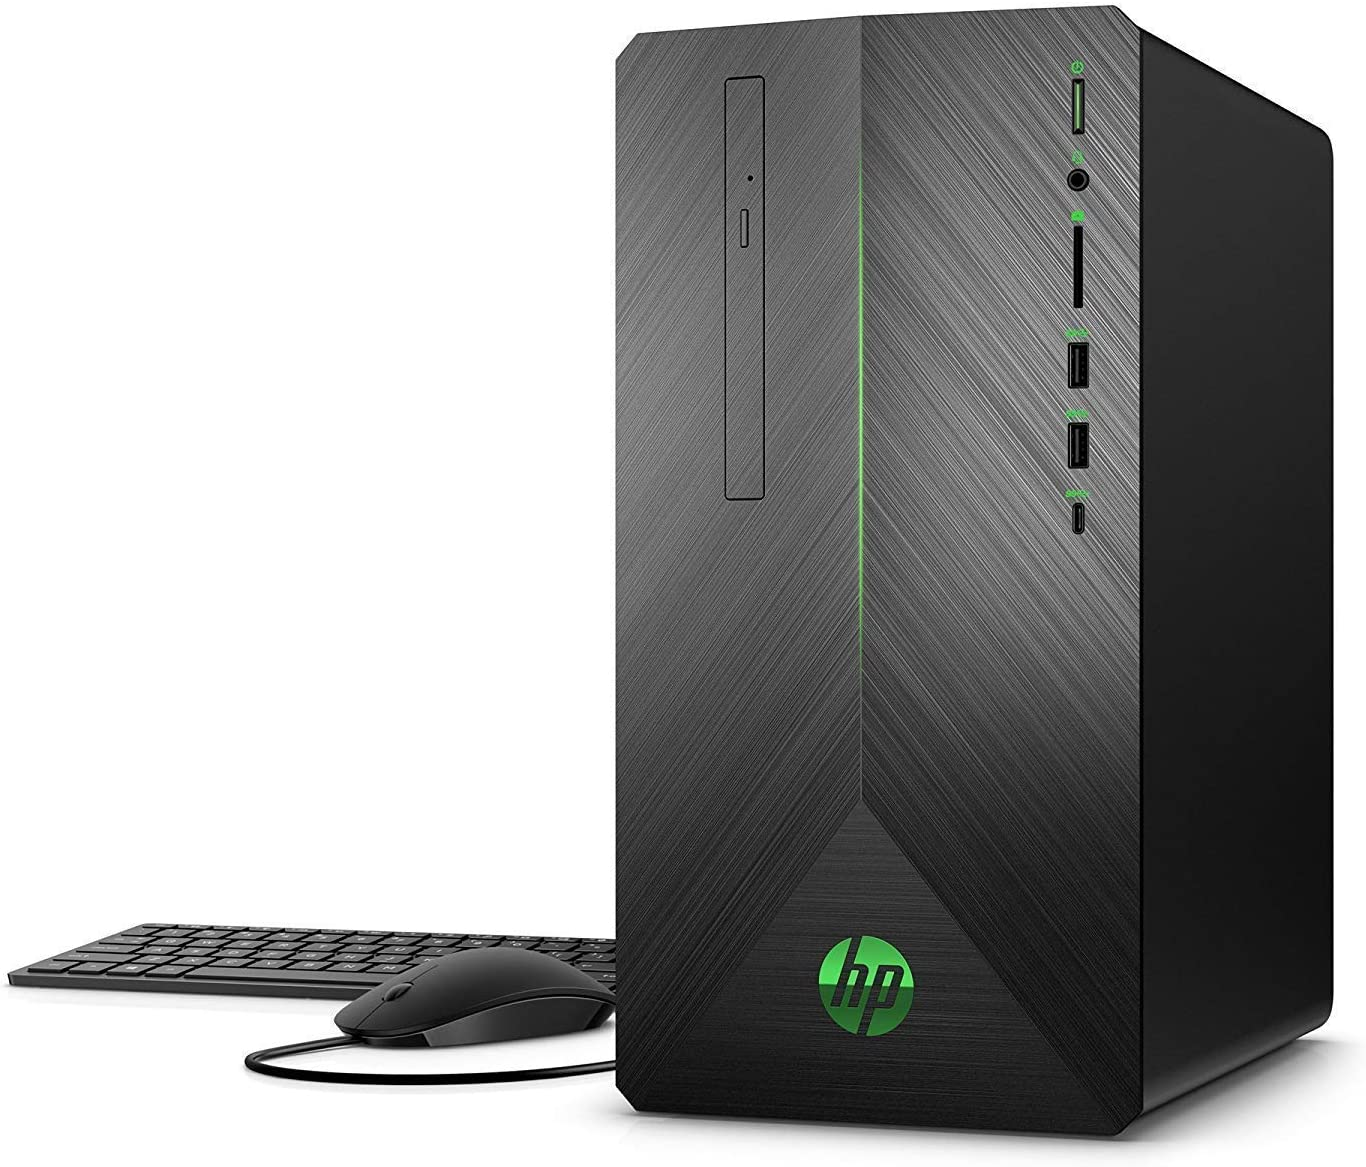 2019 Flagship HP Pavilion Virtual Reality Ready Gaming Desktop Computer High Performance, AMD Quad-Core Ryzen 5 2400G 16GB DDR4 128GB SSD 1TB 7200rpm HDD 4GB AMD Radeon RX 580 DVD WiFi BT 4.2 Win 10